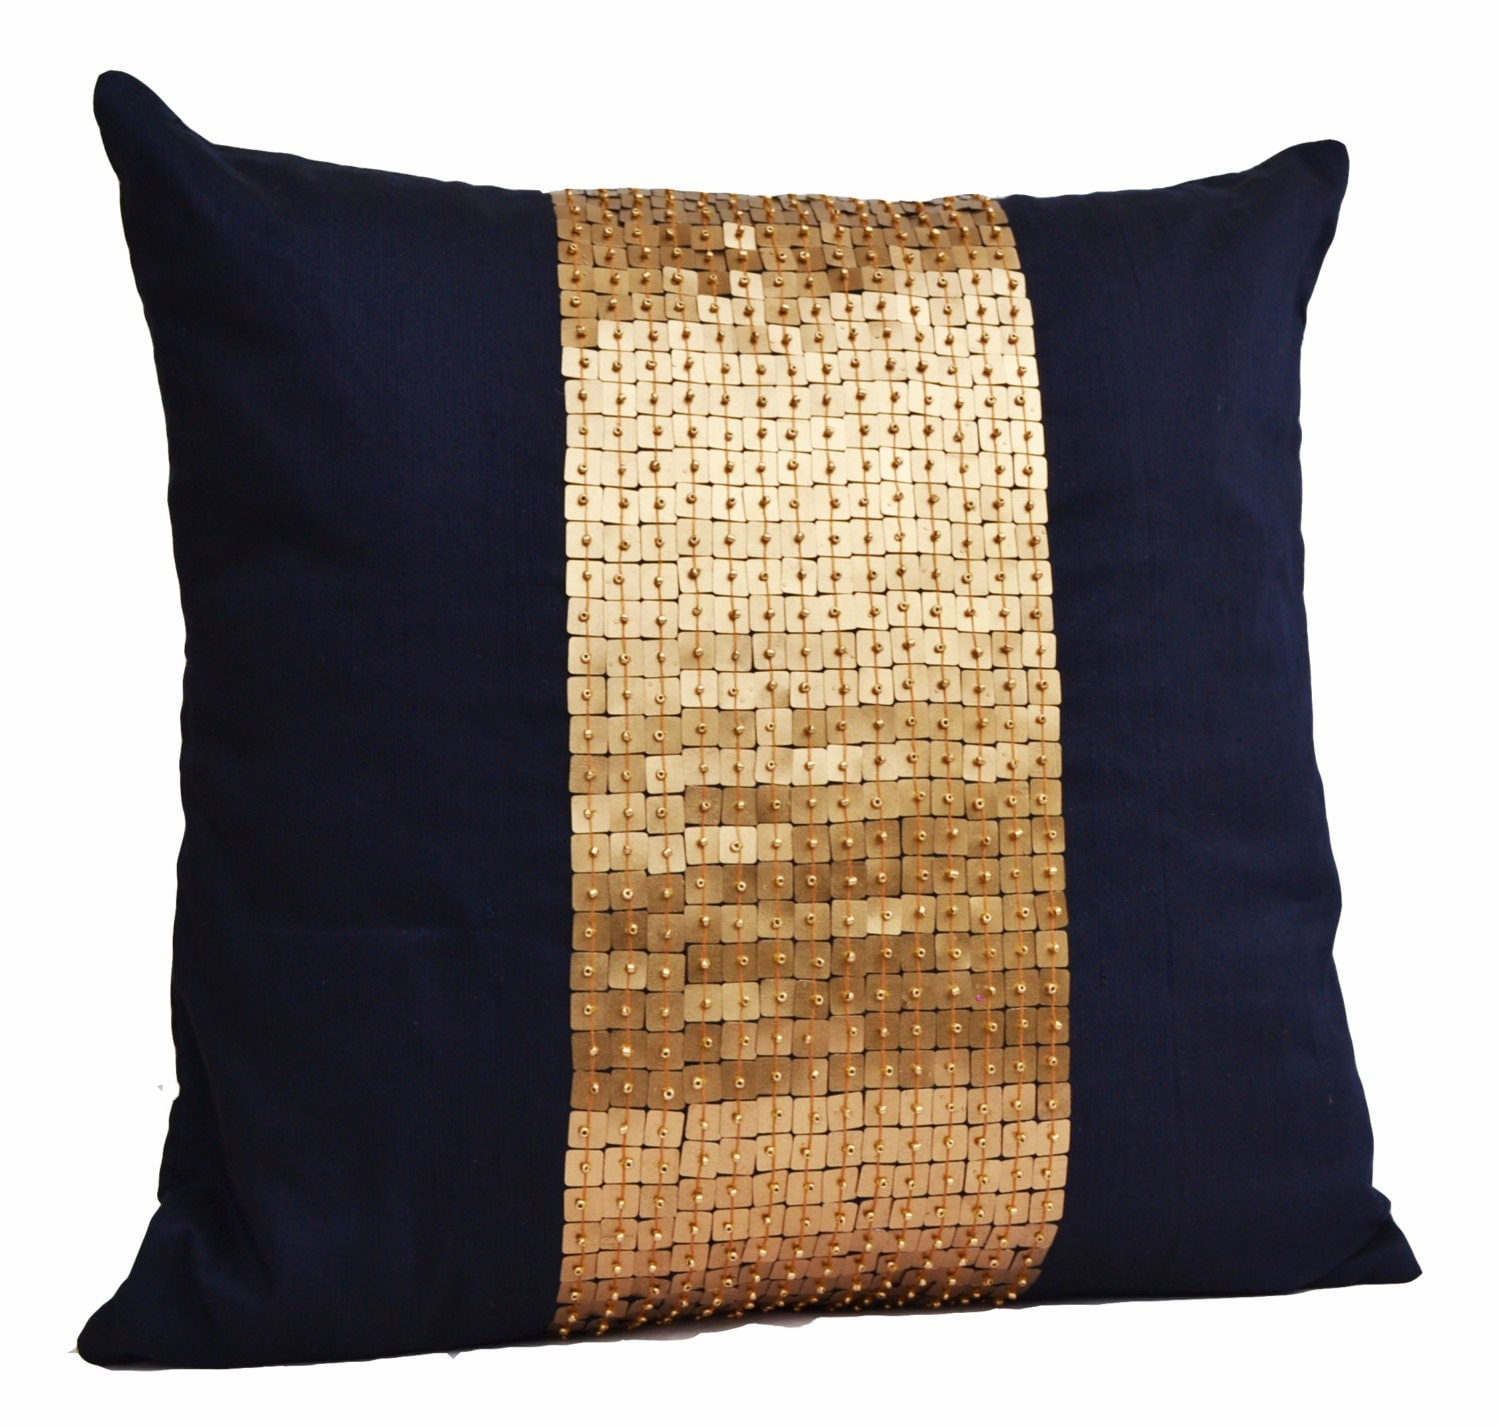 Throw Pillows Gif : Throw Pillows Navy Blue gold color block in silk sequin bead